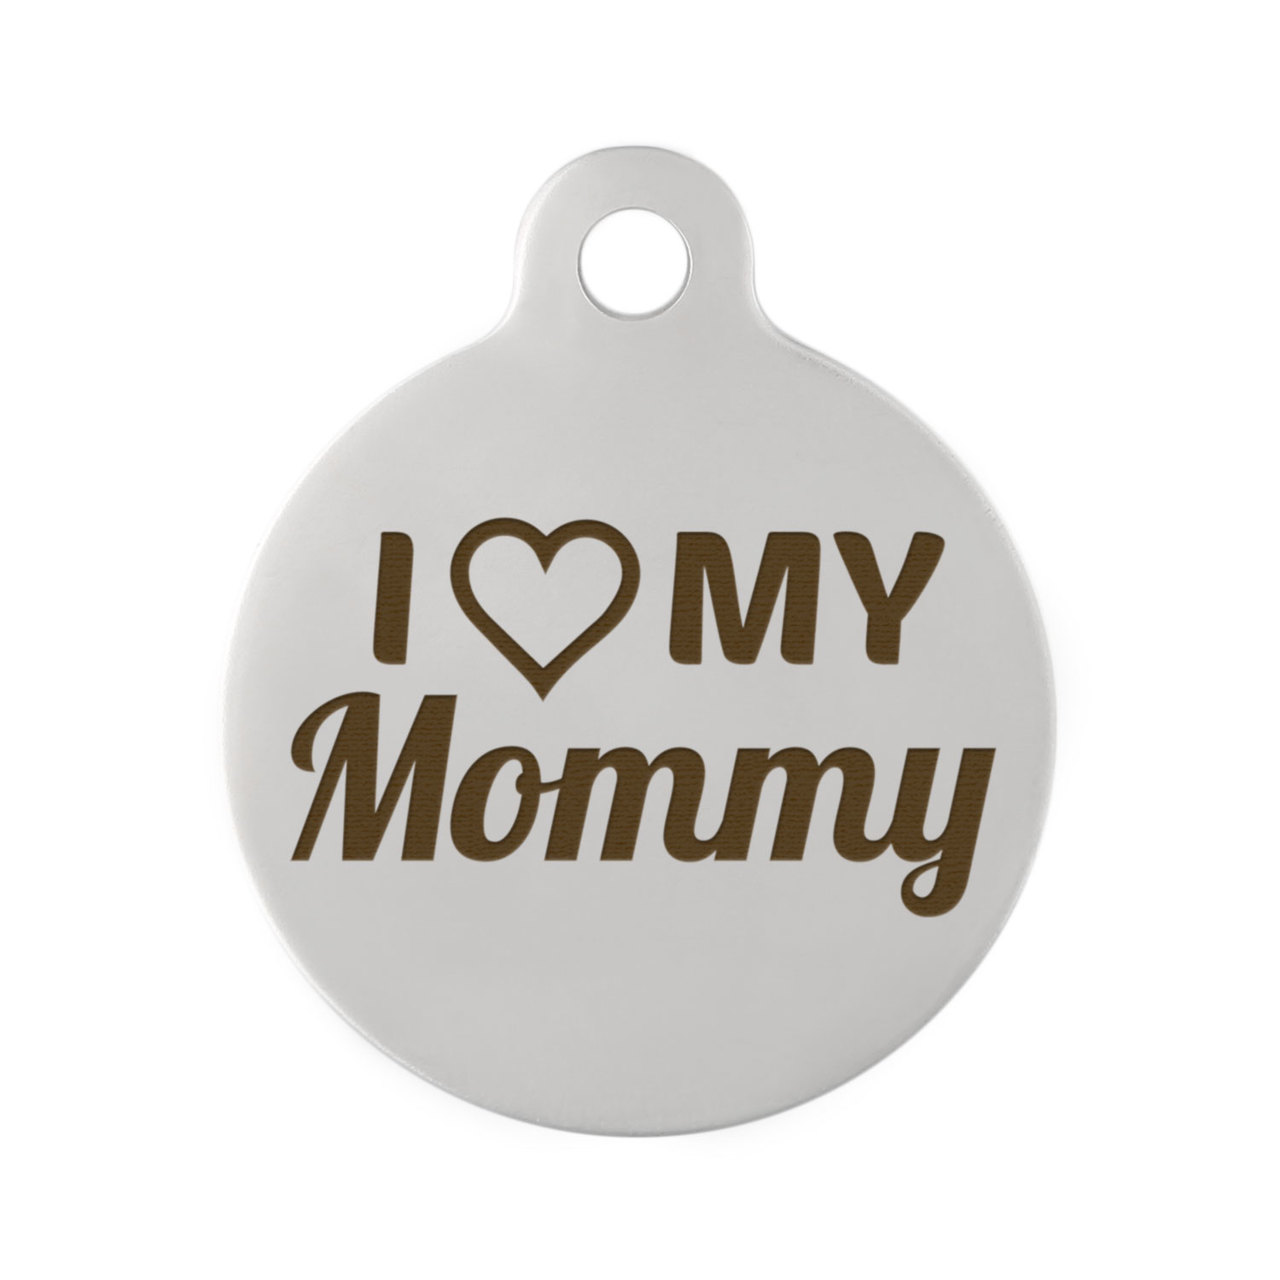 I Love My Mommy Dog ID Tags Stainless Steel Front Tag